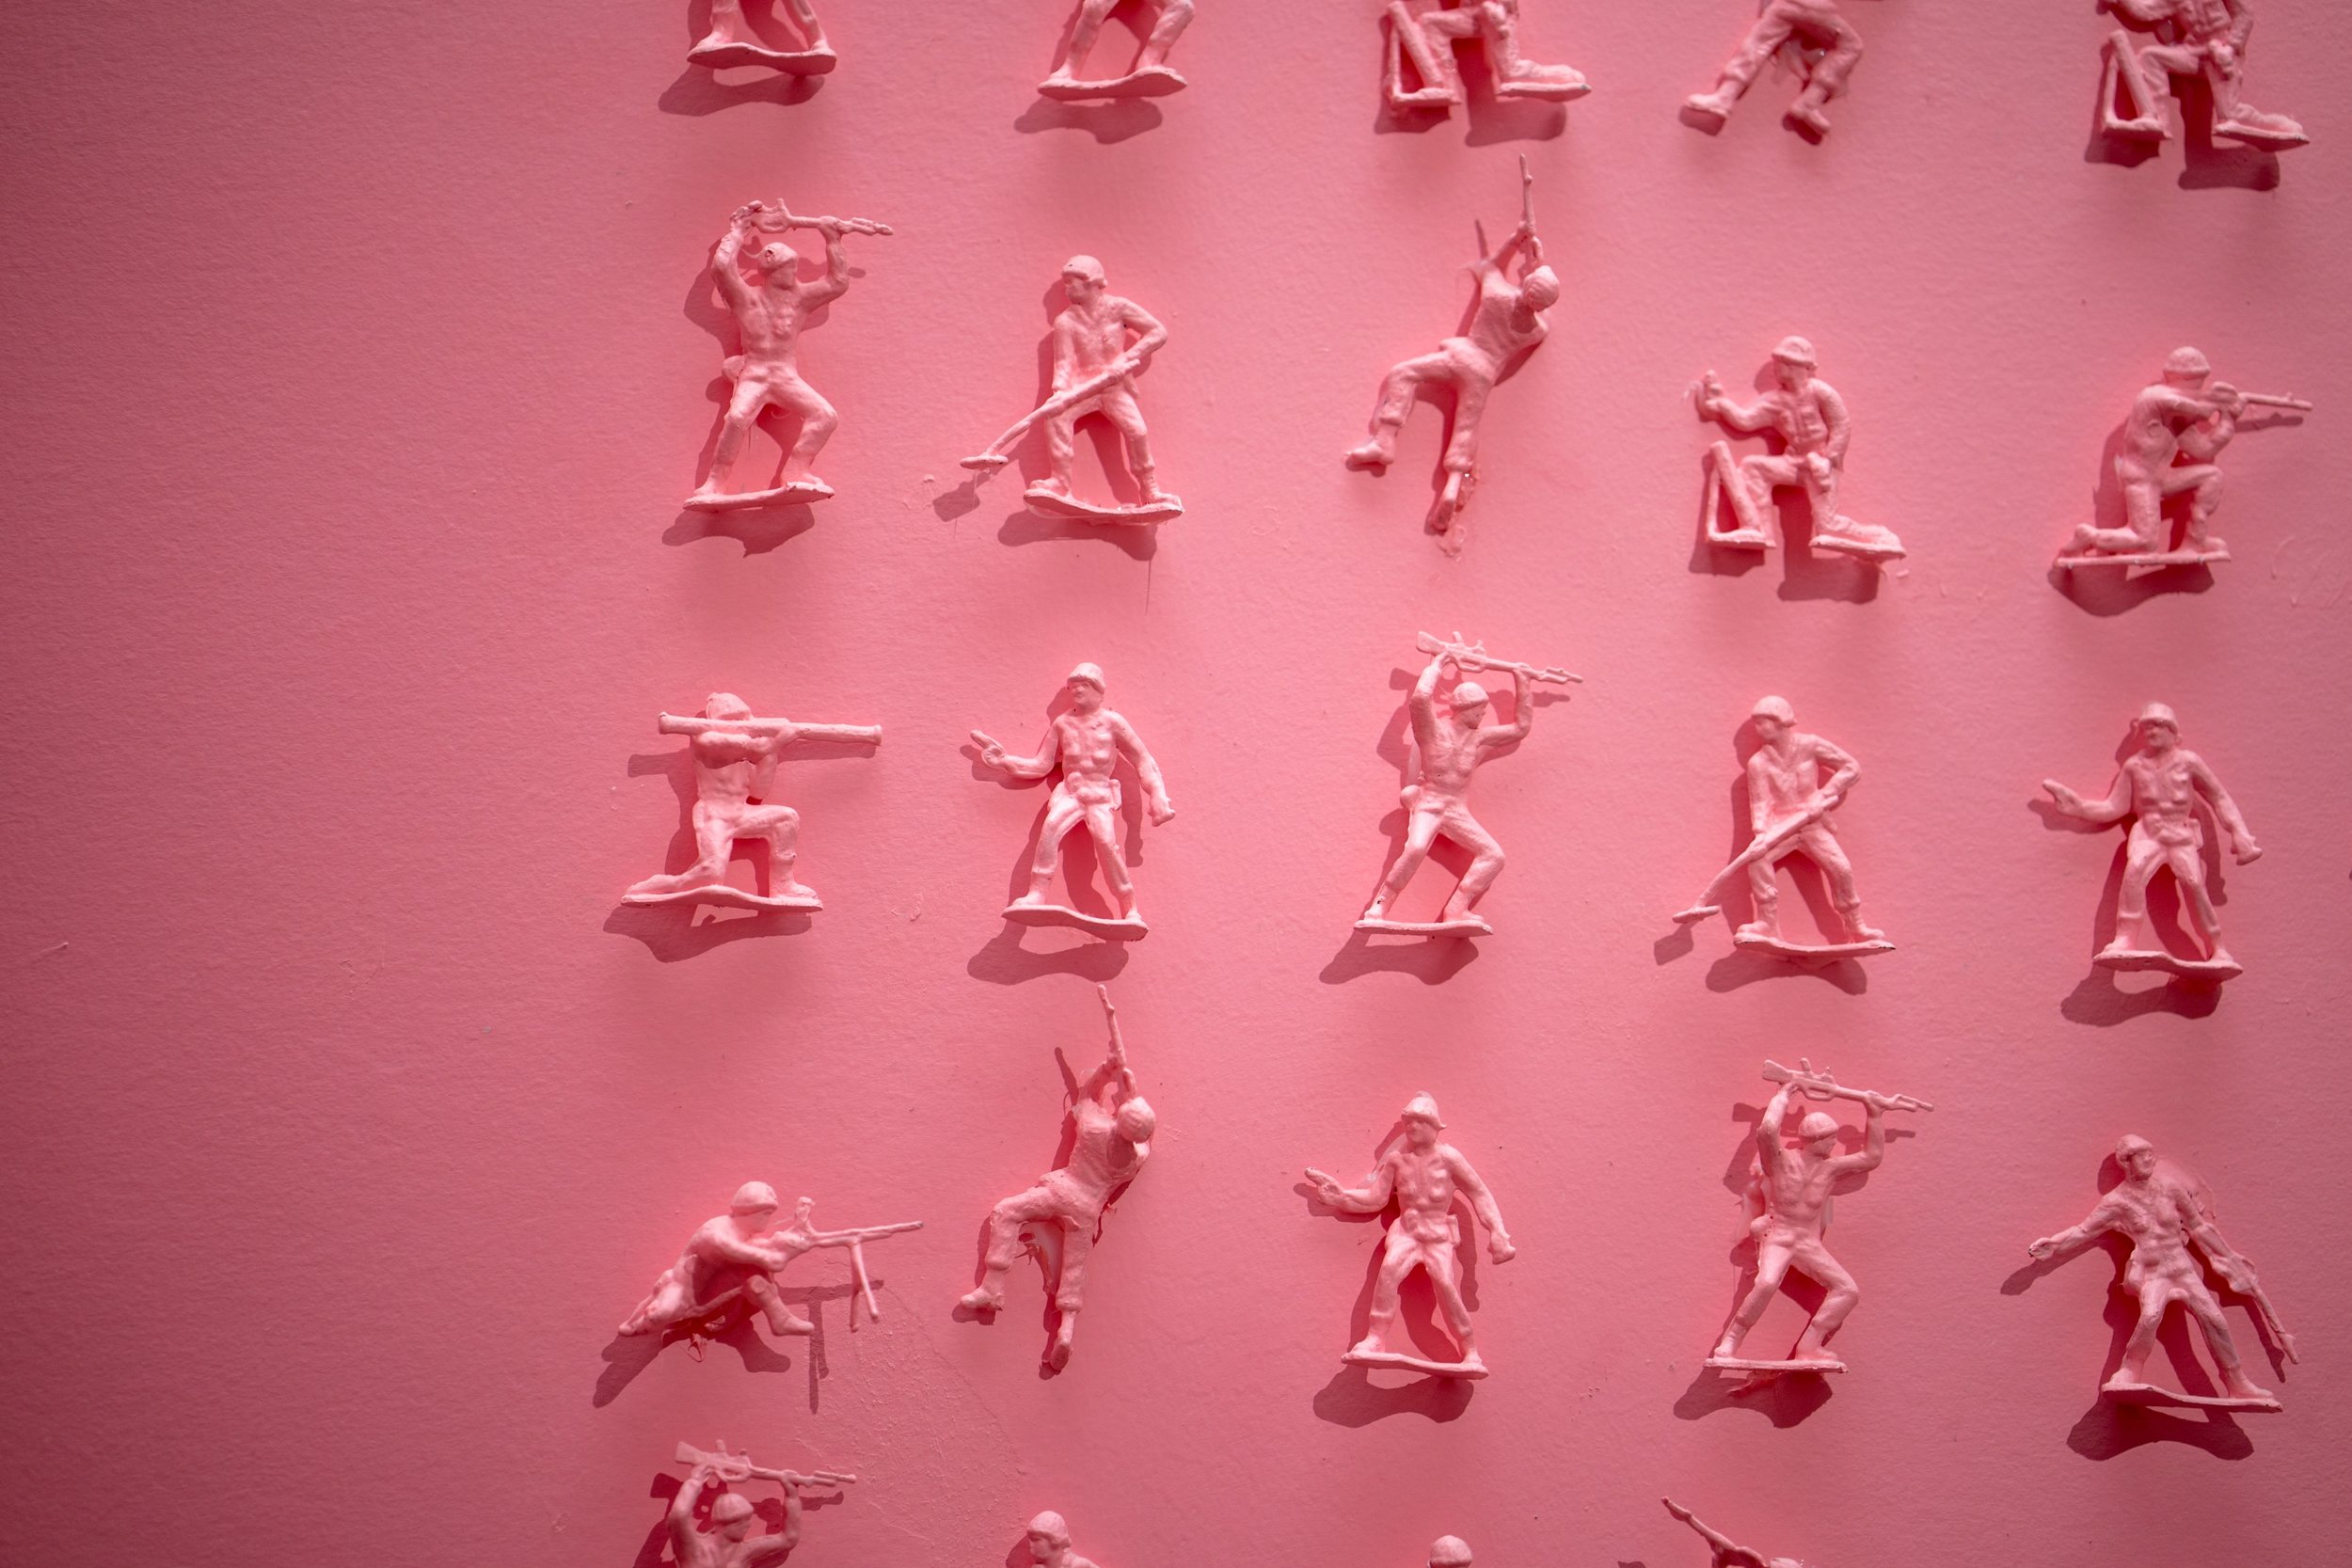 The army soldiers at the Museum of Ice Cream.